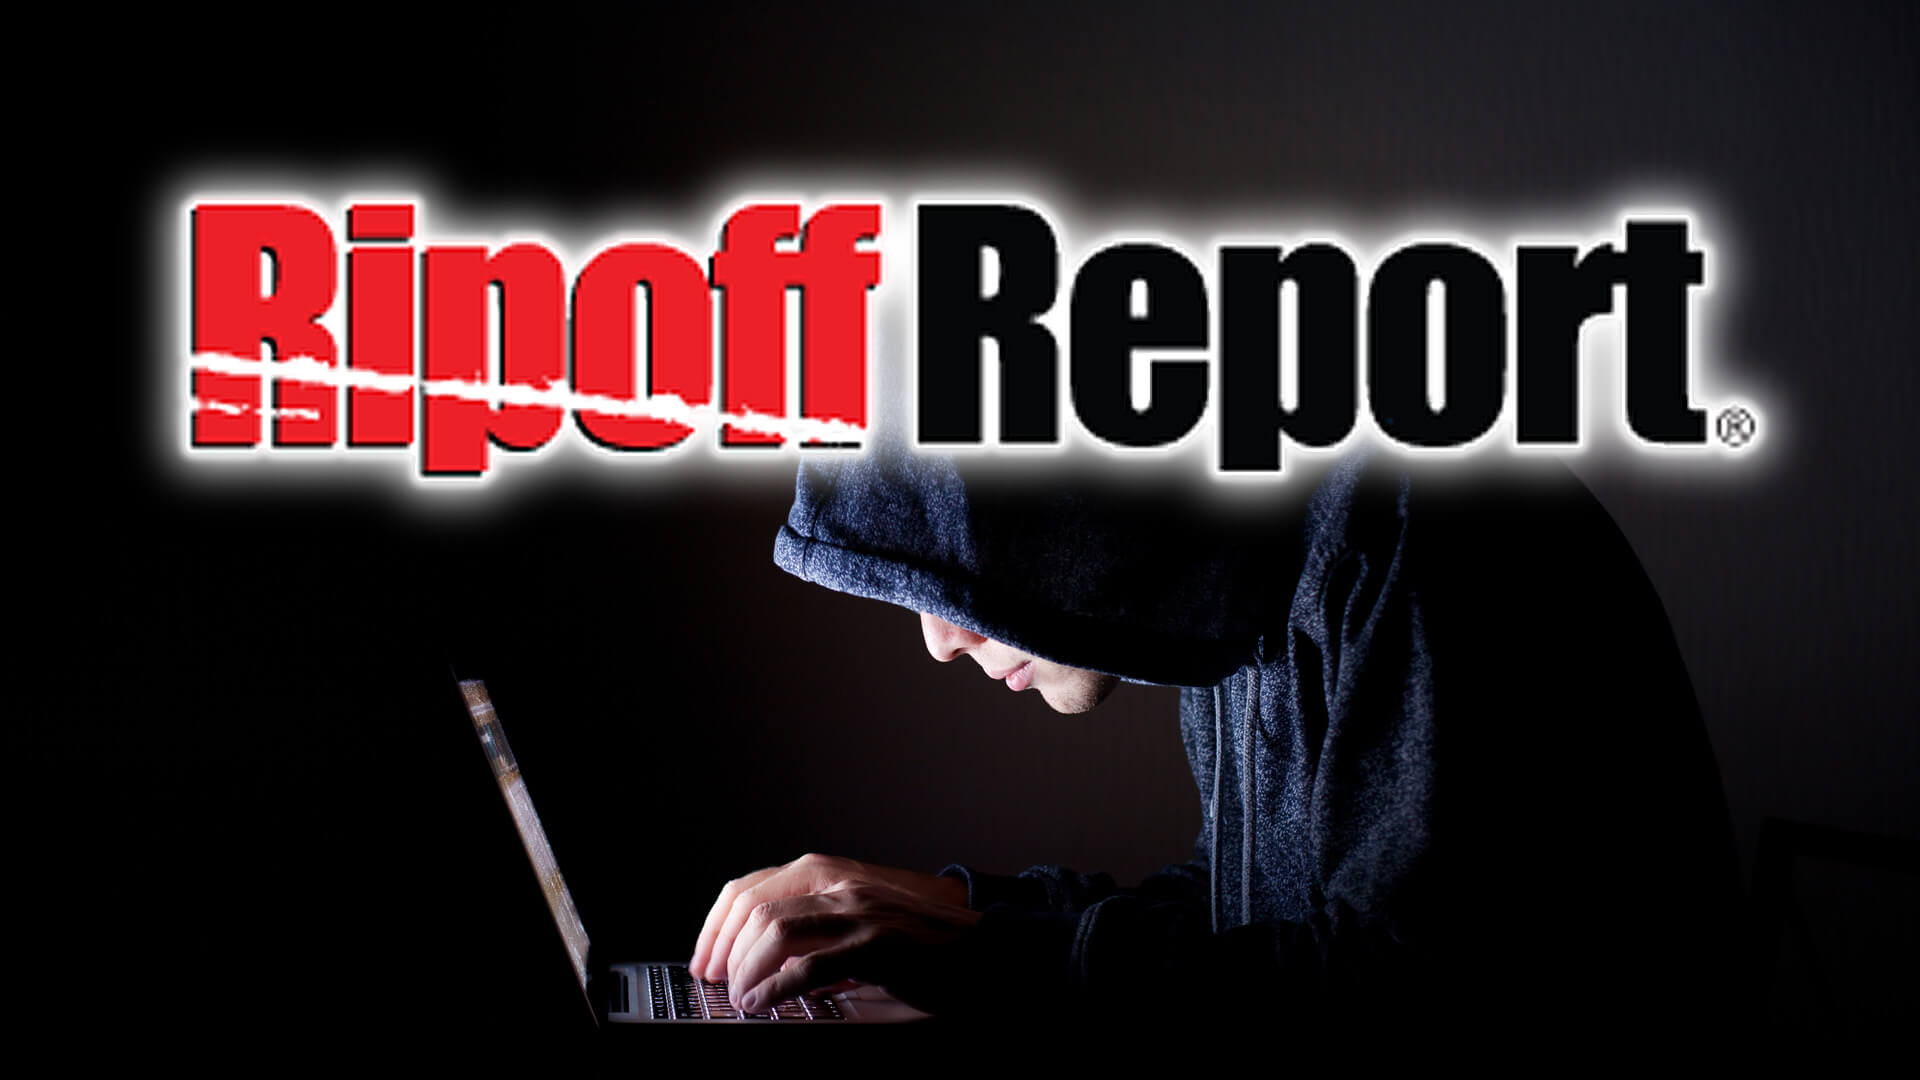 How To Remove Ripoff Report From Google search Results? - NSDM